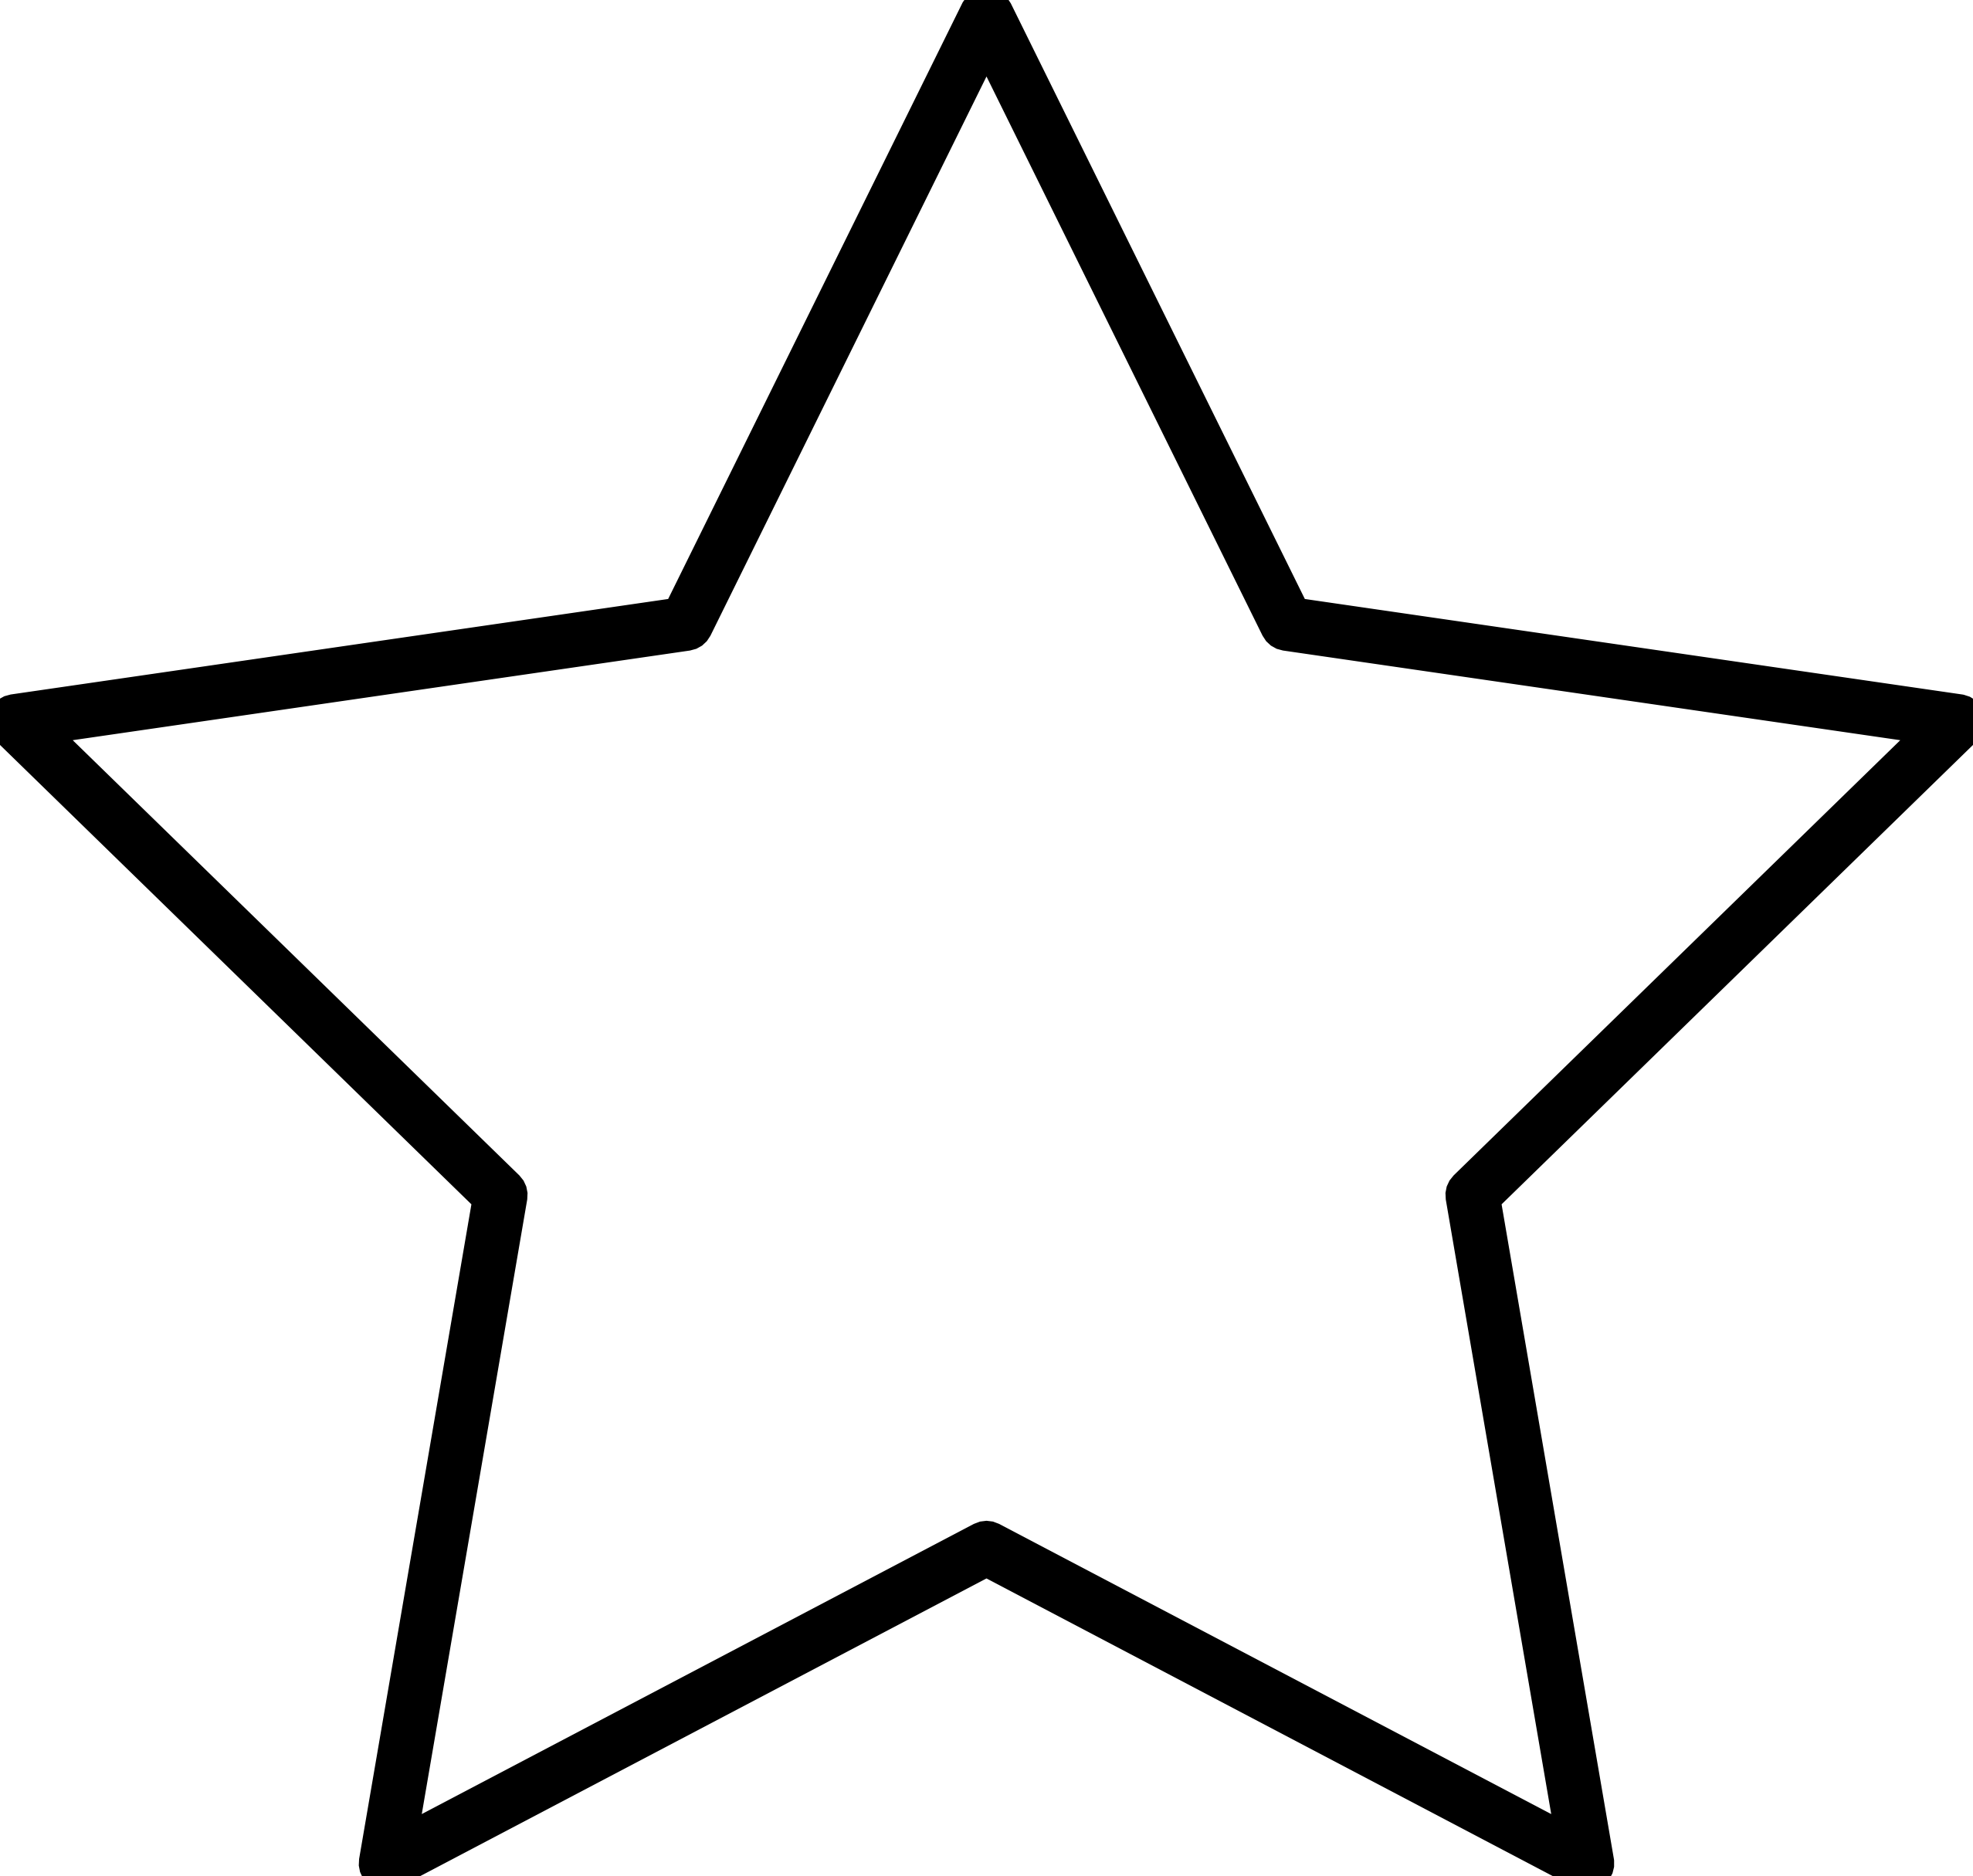 Clipart star outline graphic download Star Of David Silhouette at GetDrawings.com | Free for personal use ... graphic download